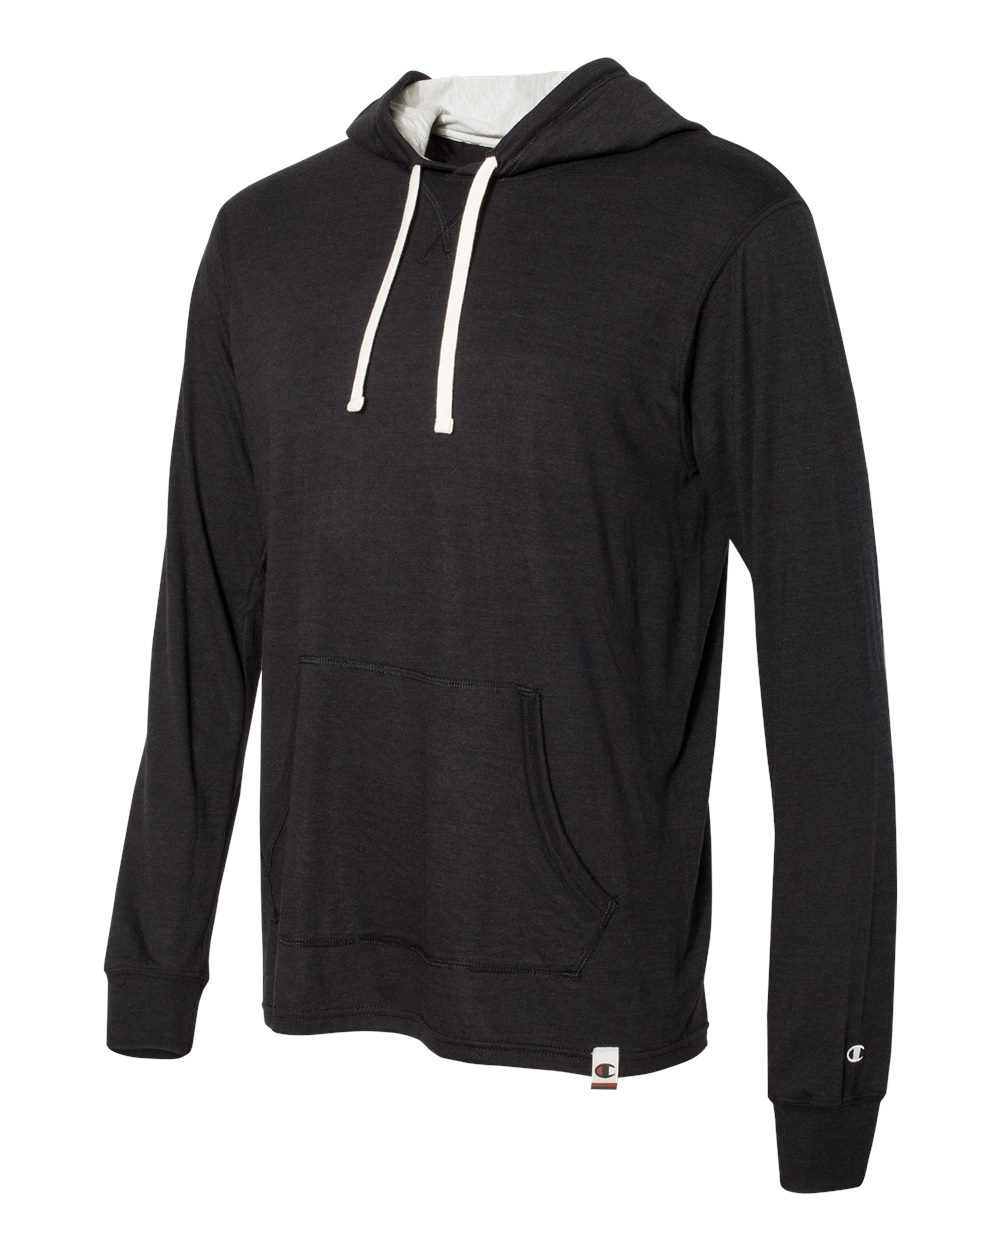 Champion AO100 - Originals Triblend Hooded Pullover